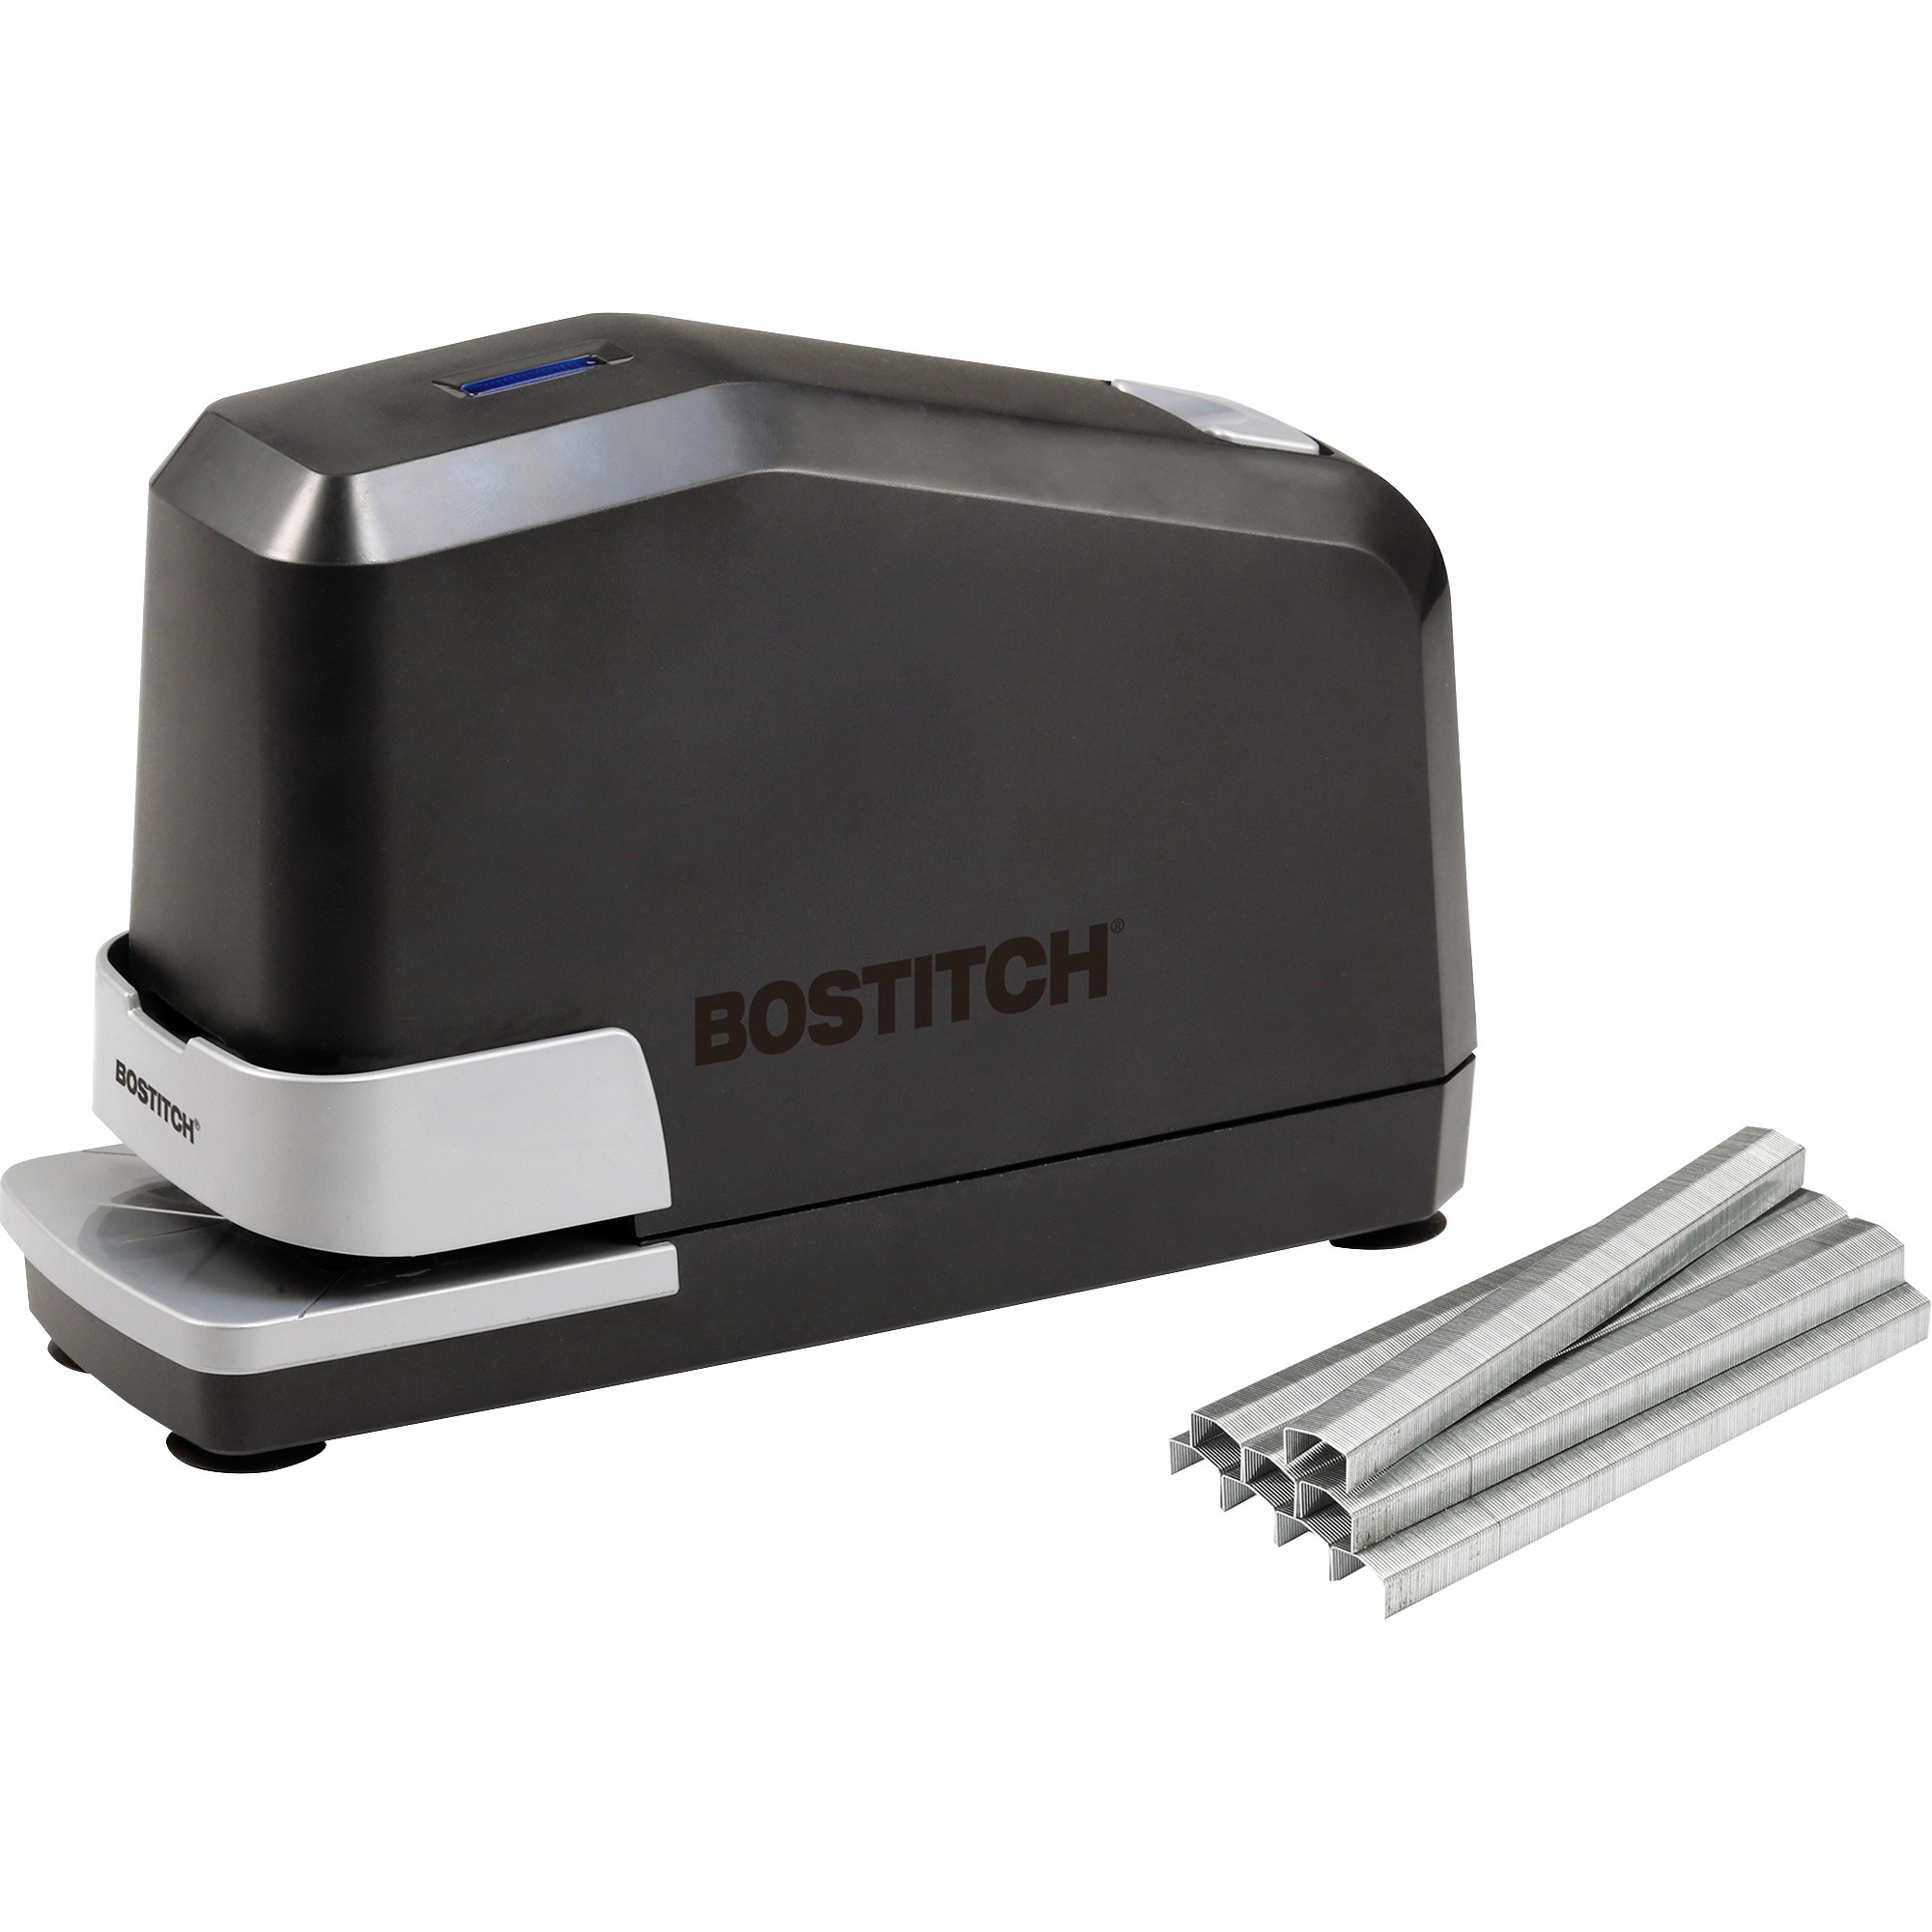 Bostitch B8 Impulse 45 Electric Stapler, 45-SHeet Capacity, Black by Amax Inc